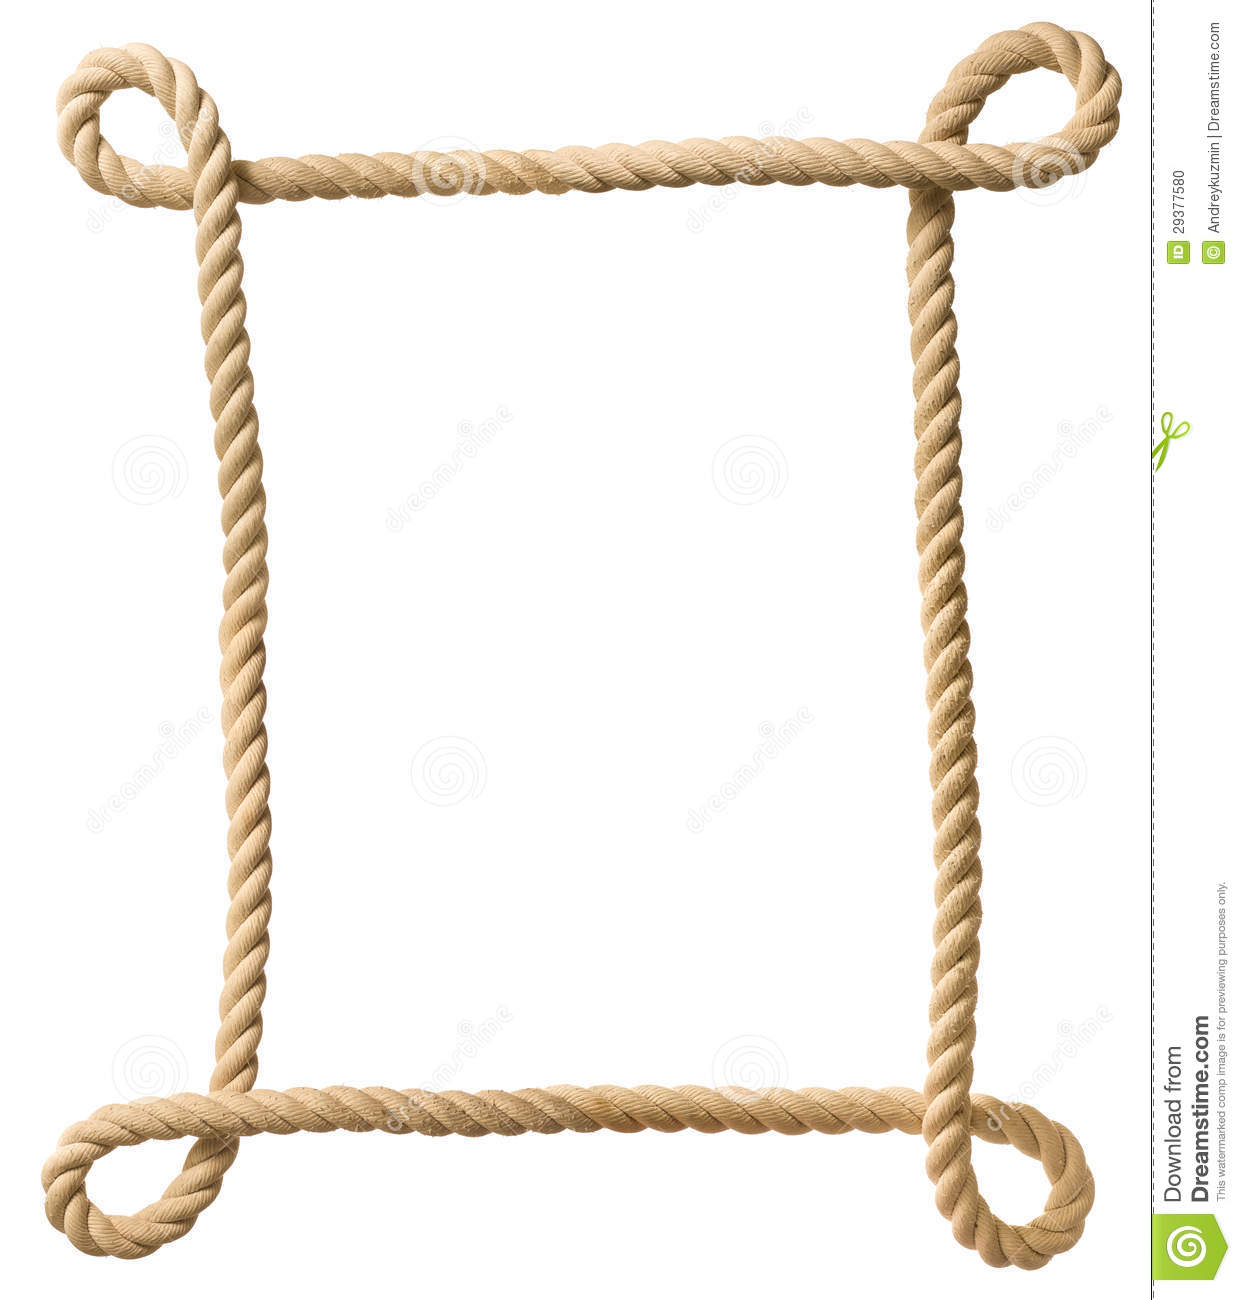 Rope Frame Stock Photo - Image: 29377580